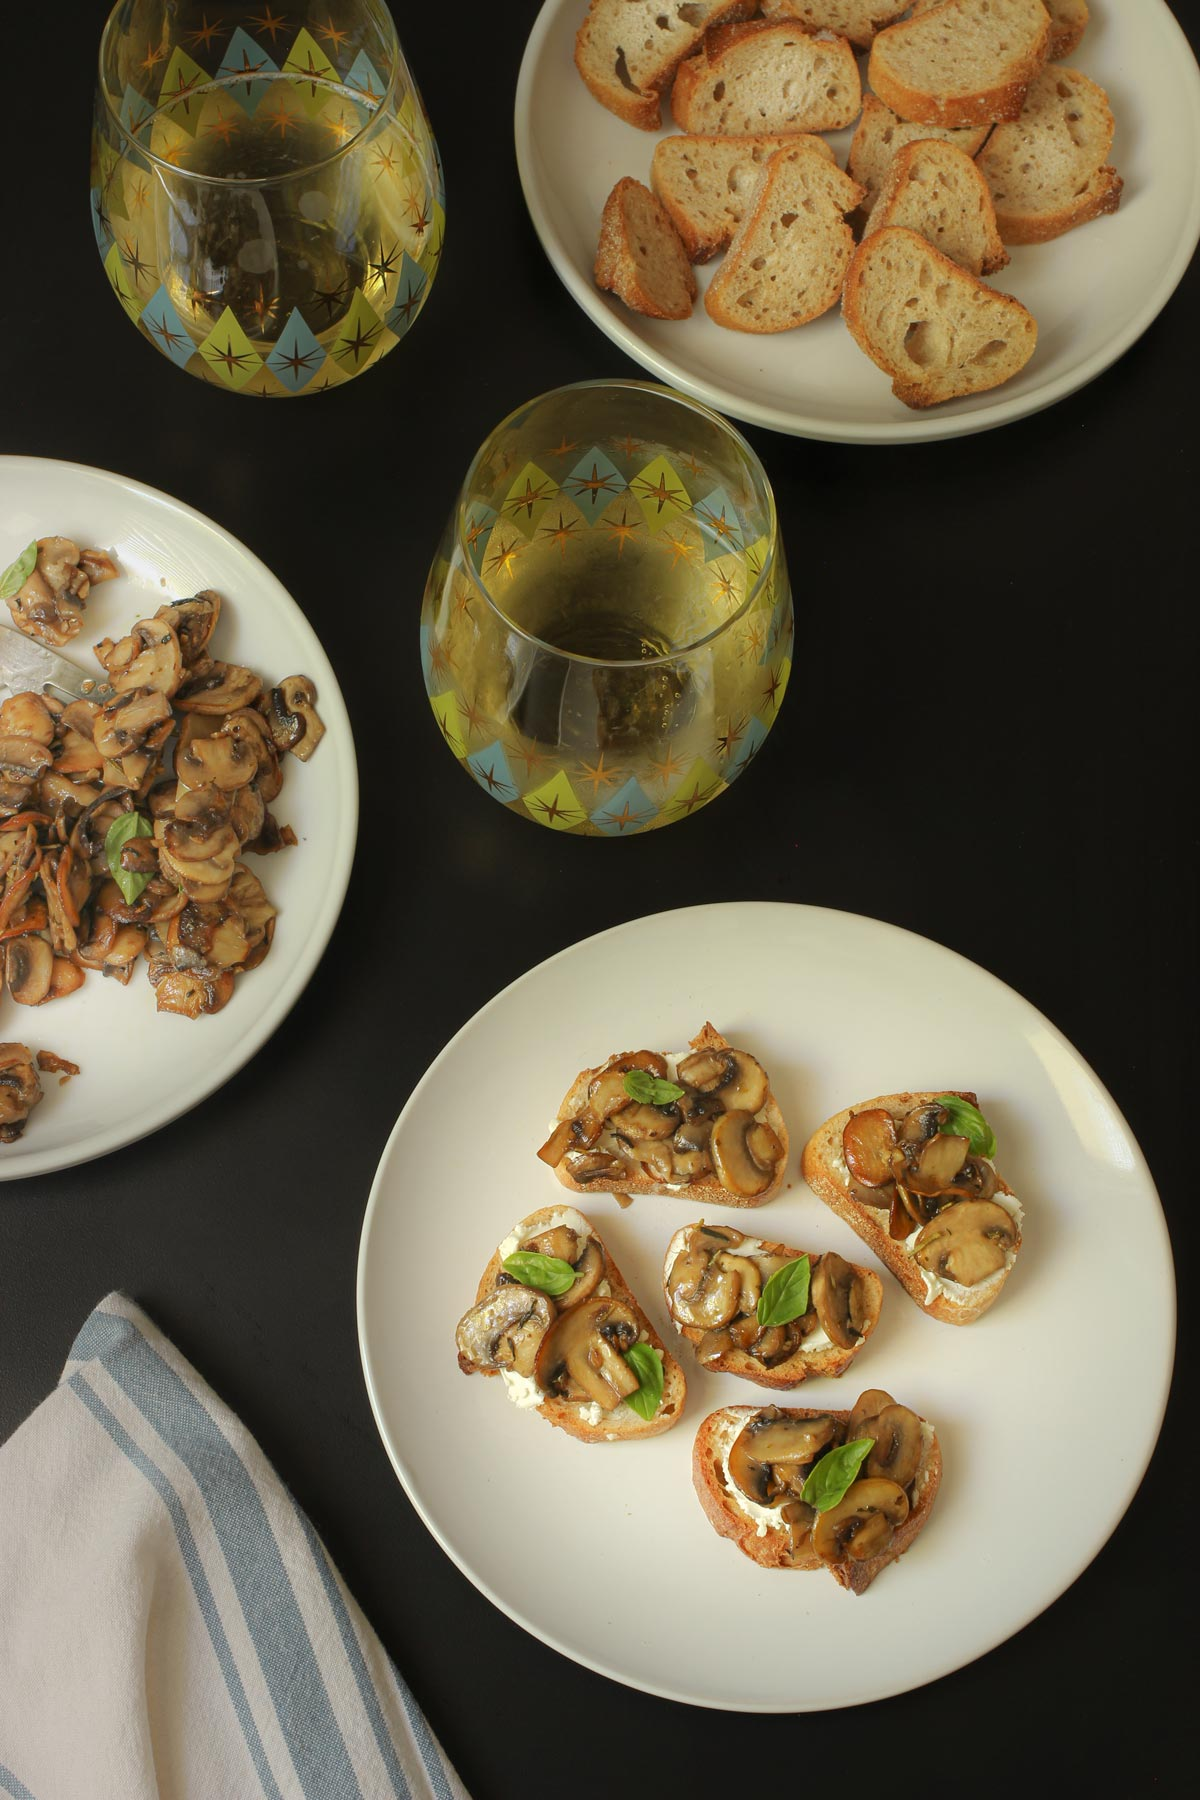 sauteed mushrooms on toast with goat cheese on table with glasses of prosecco.